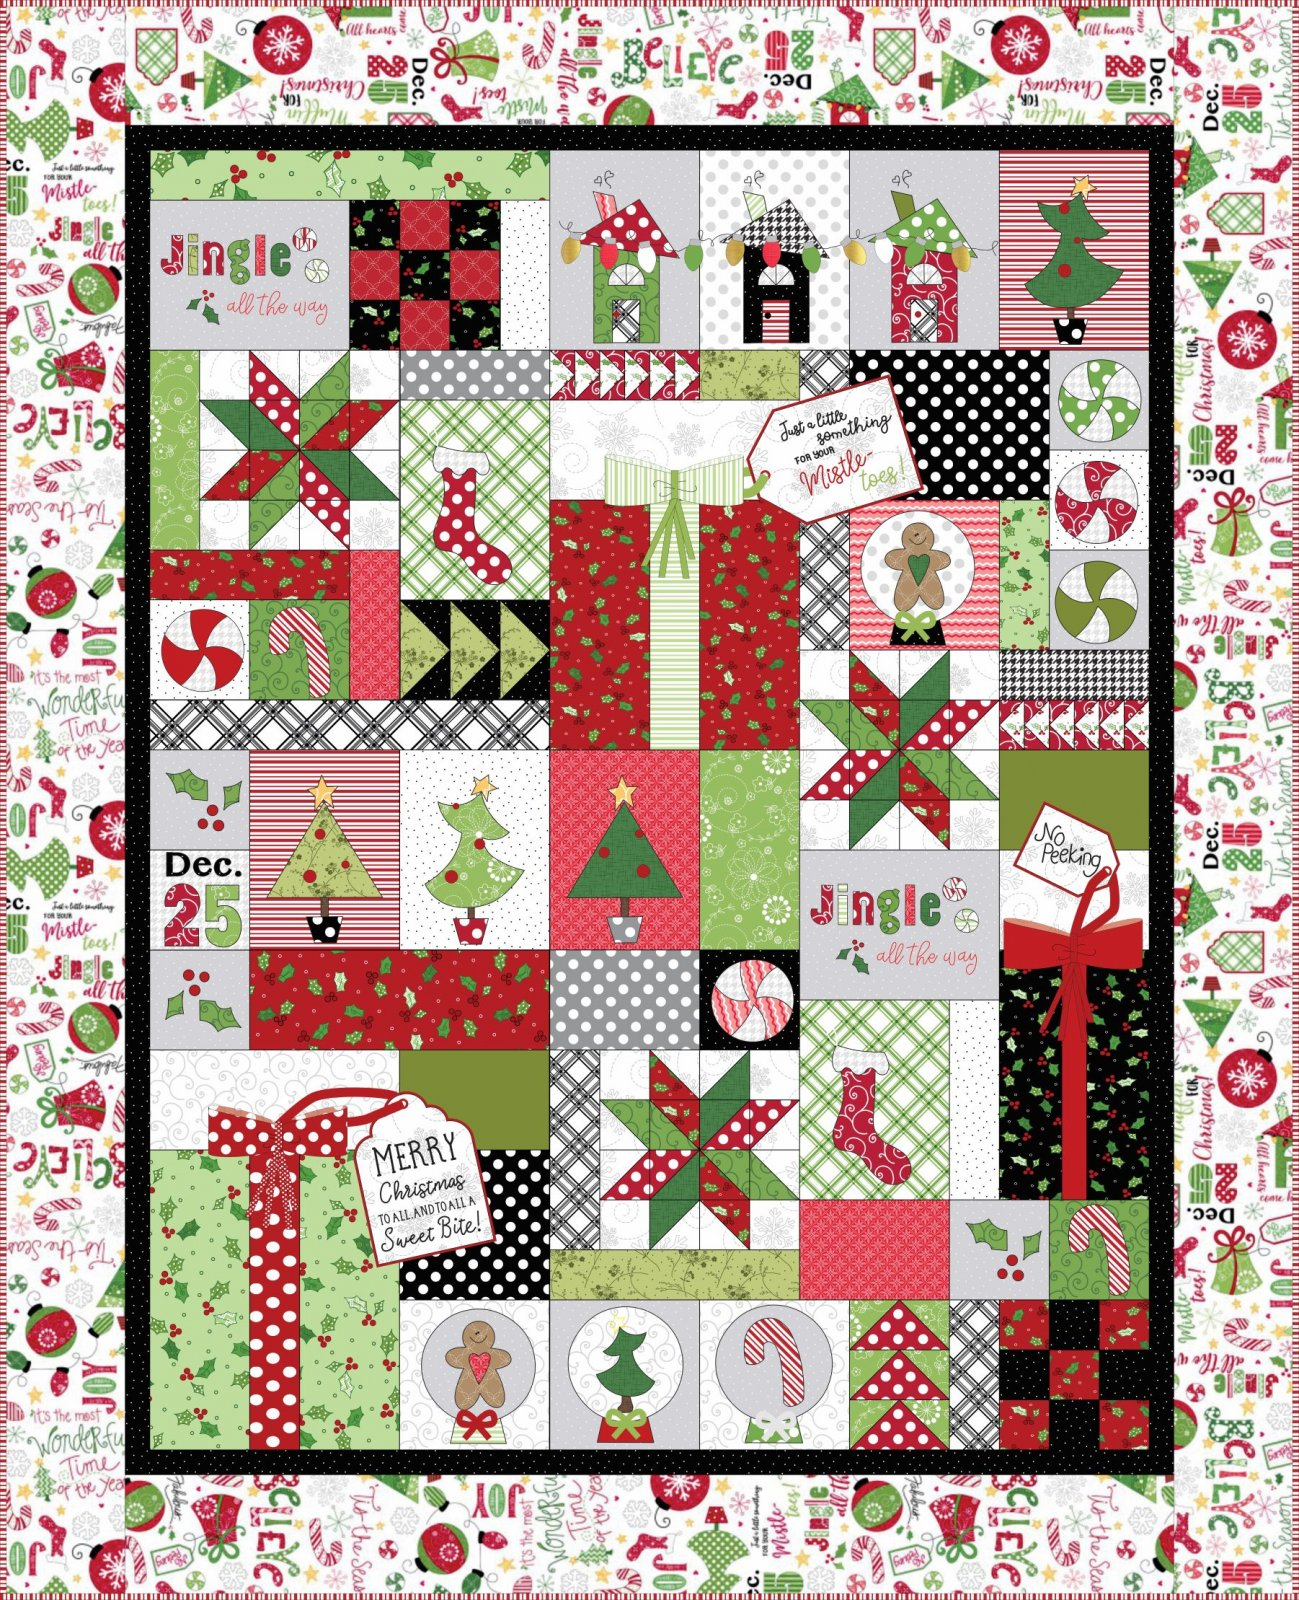 CSMD-KKID801 W - JINGLE & WHISK - JINGLE ALL THE WAY WHITE QUILT KIT 50 x 62